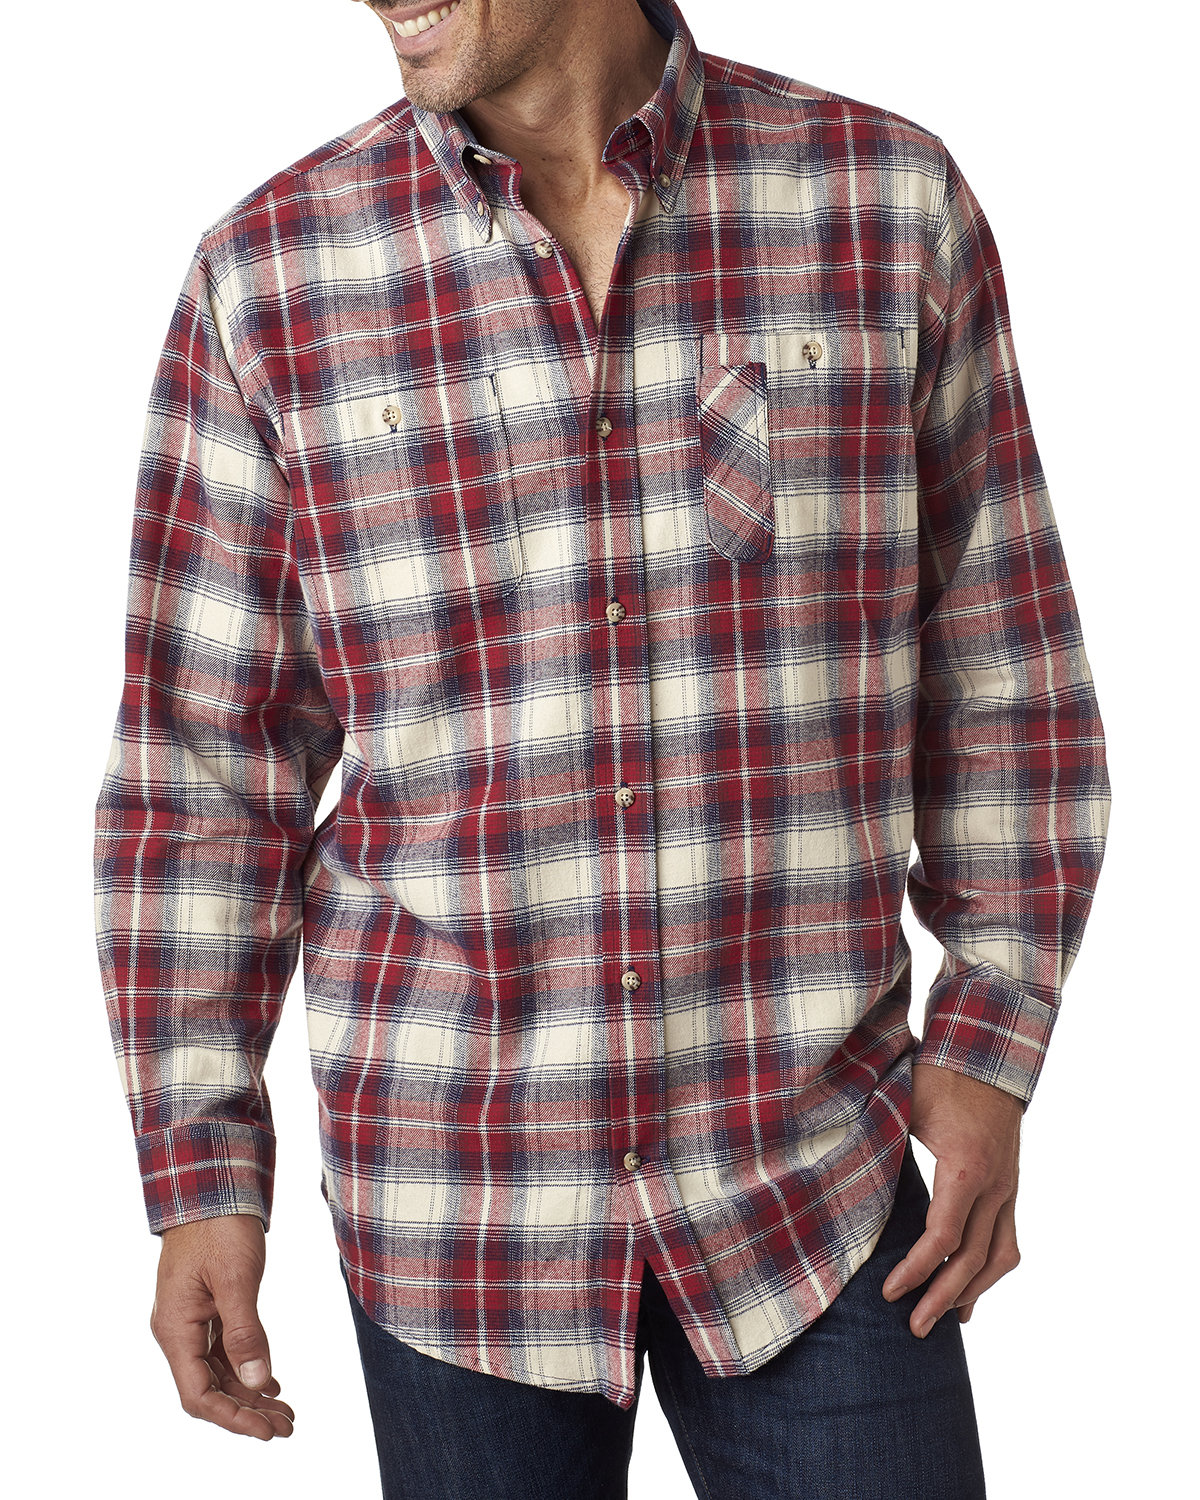 Backpacker Men's Yarn-Dyed Flannel Shirt INDEPENDENT